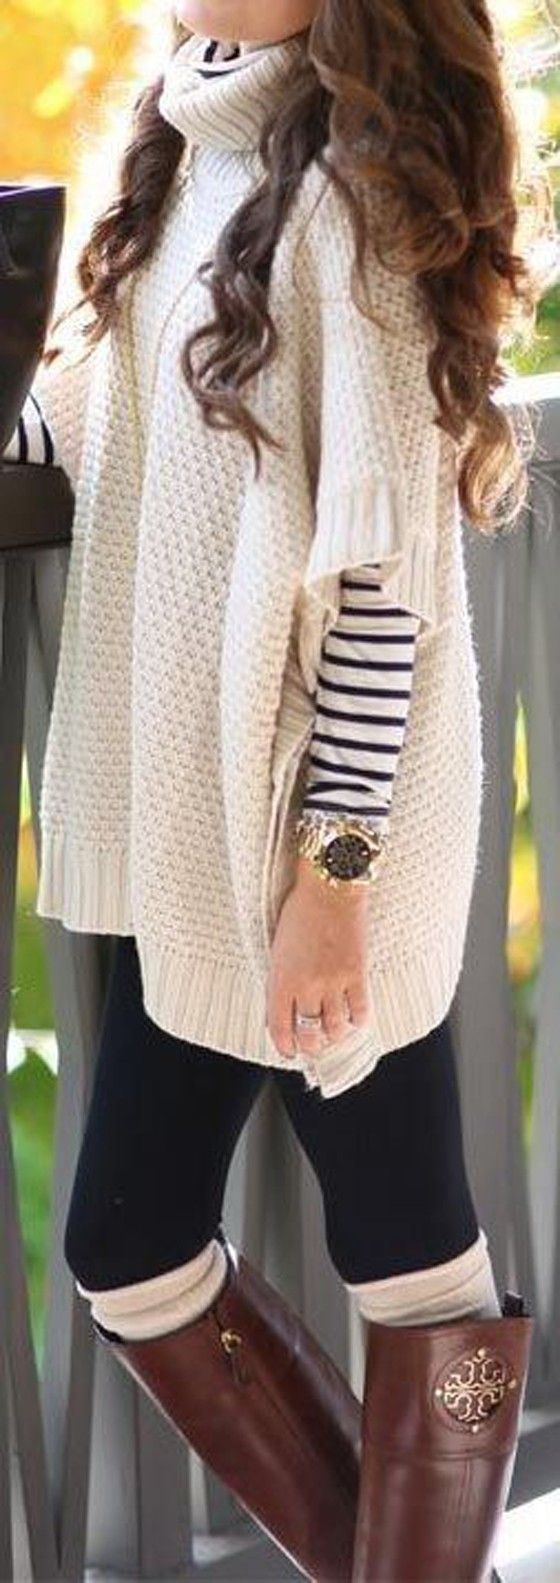 White Plain Hollow-out Short Sleeve Cape Sweater | Clothes ...